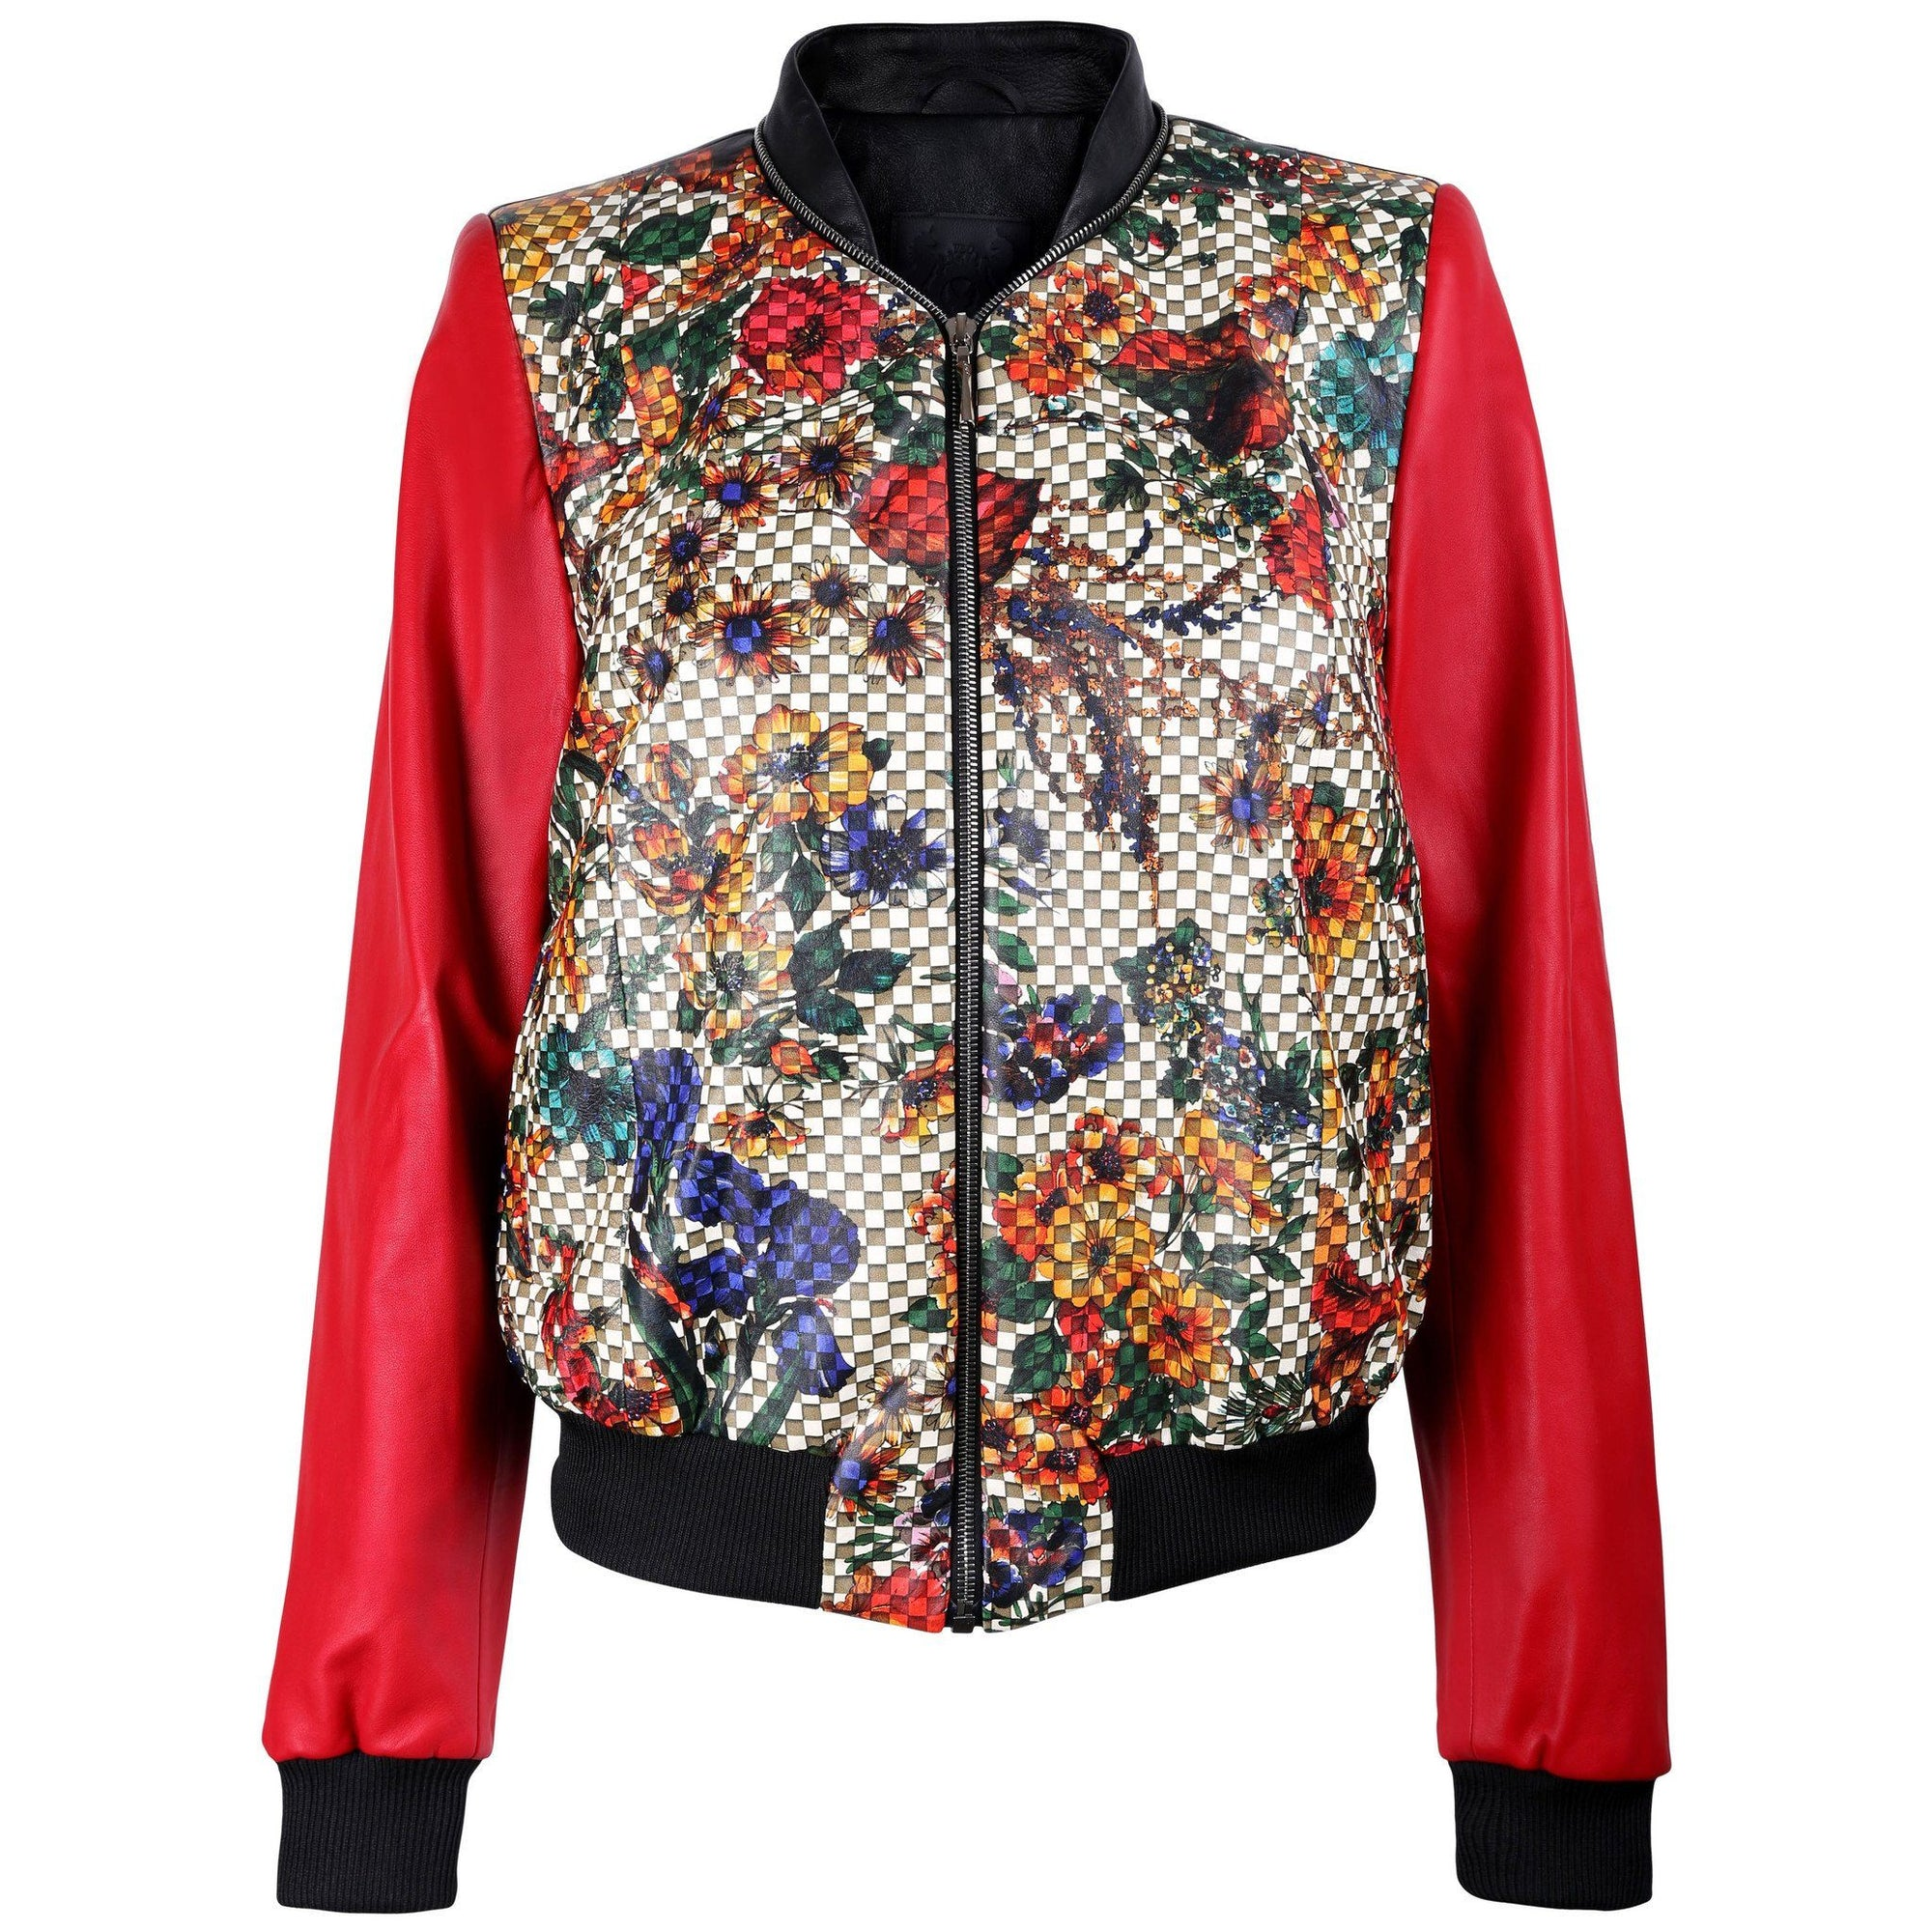 Floral Print Red Bomber Jacket - VOLS & ORIGINAL